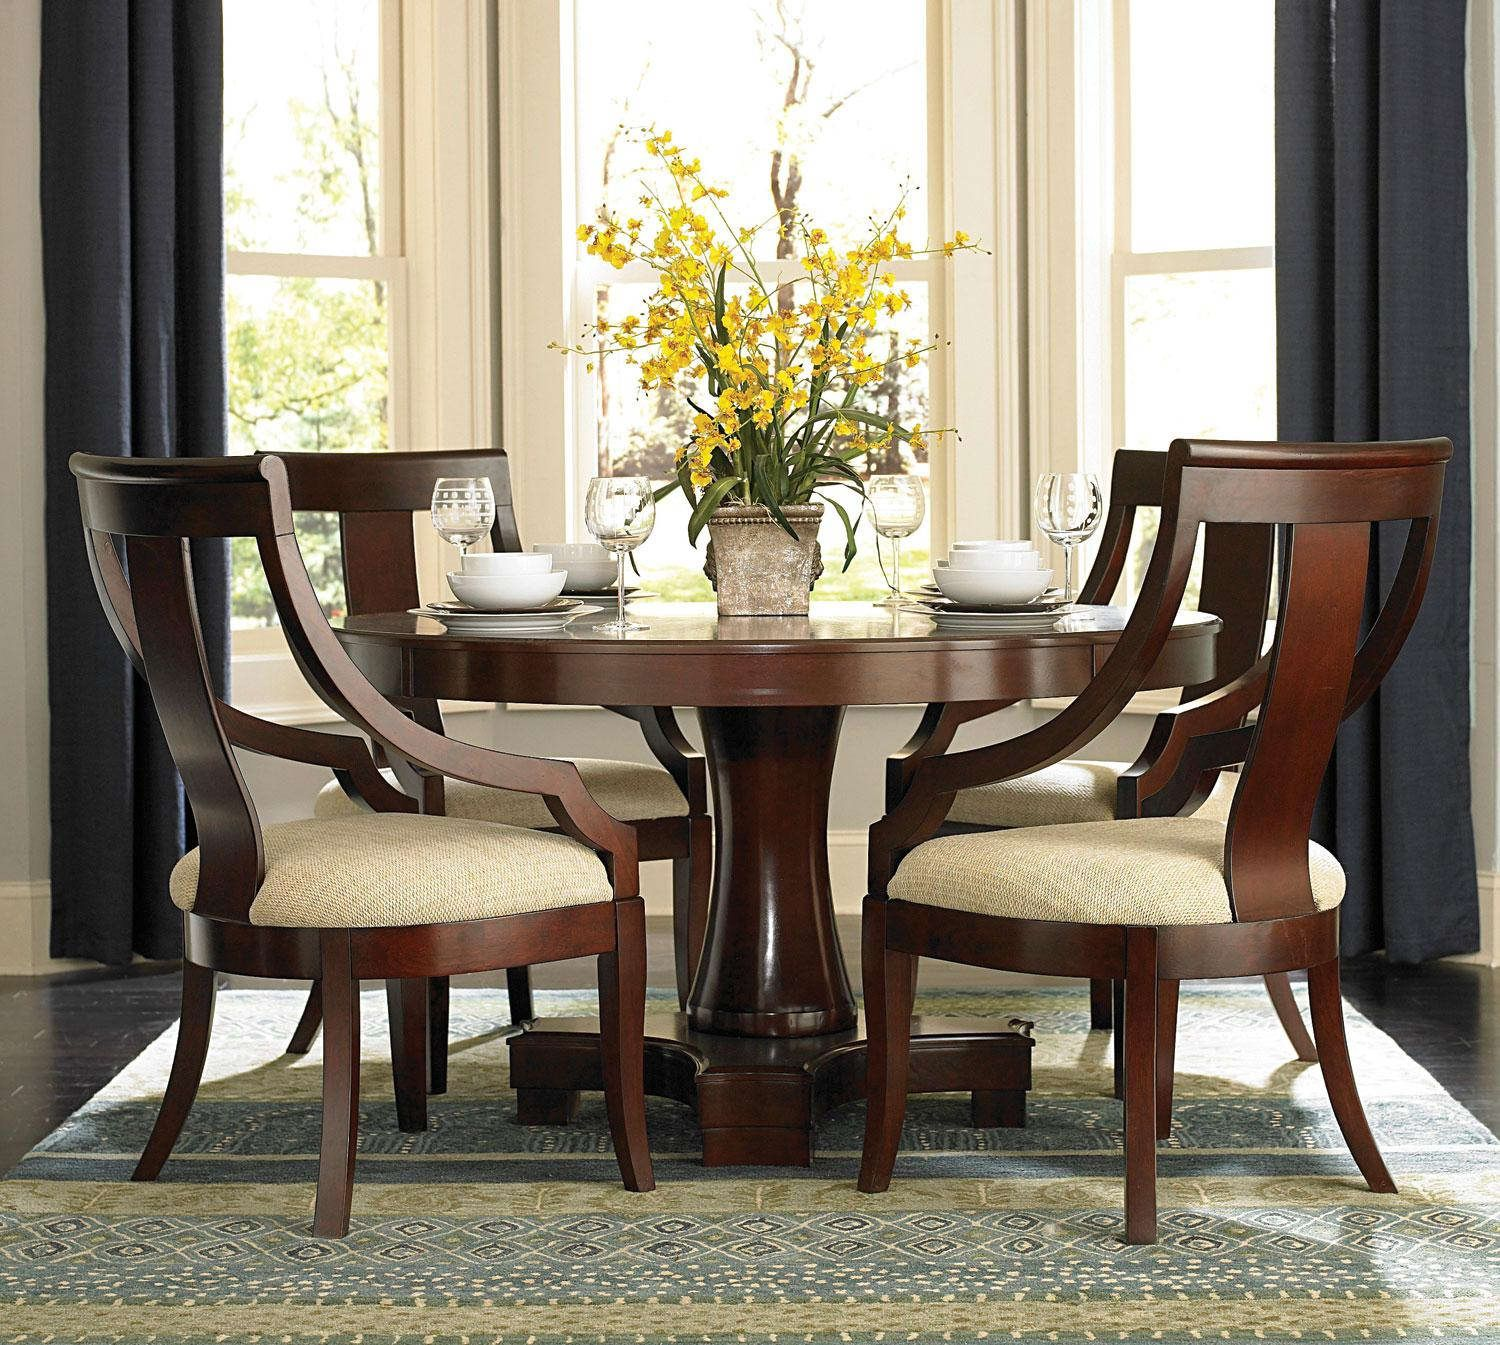 Dining Room Beautiful Yellow Dining Table Centerpieces With Round Pedestal Dining Table Round Pedestal Dining Round Dining Room